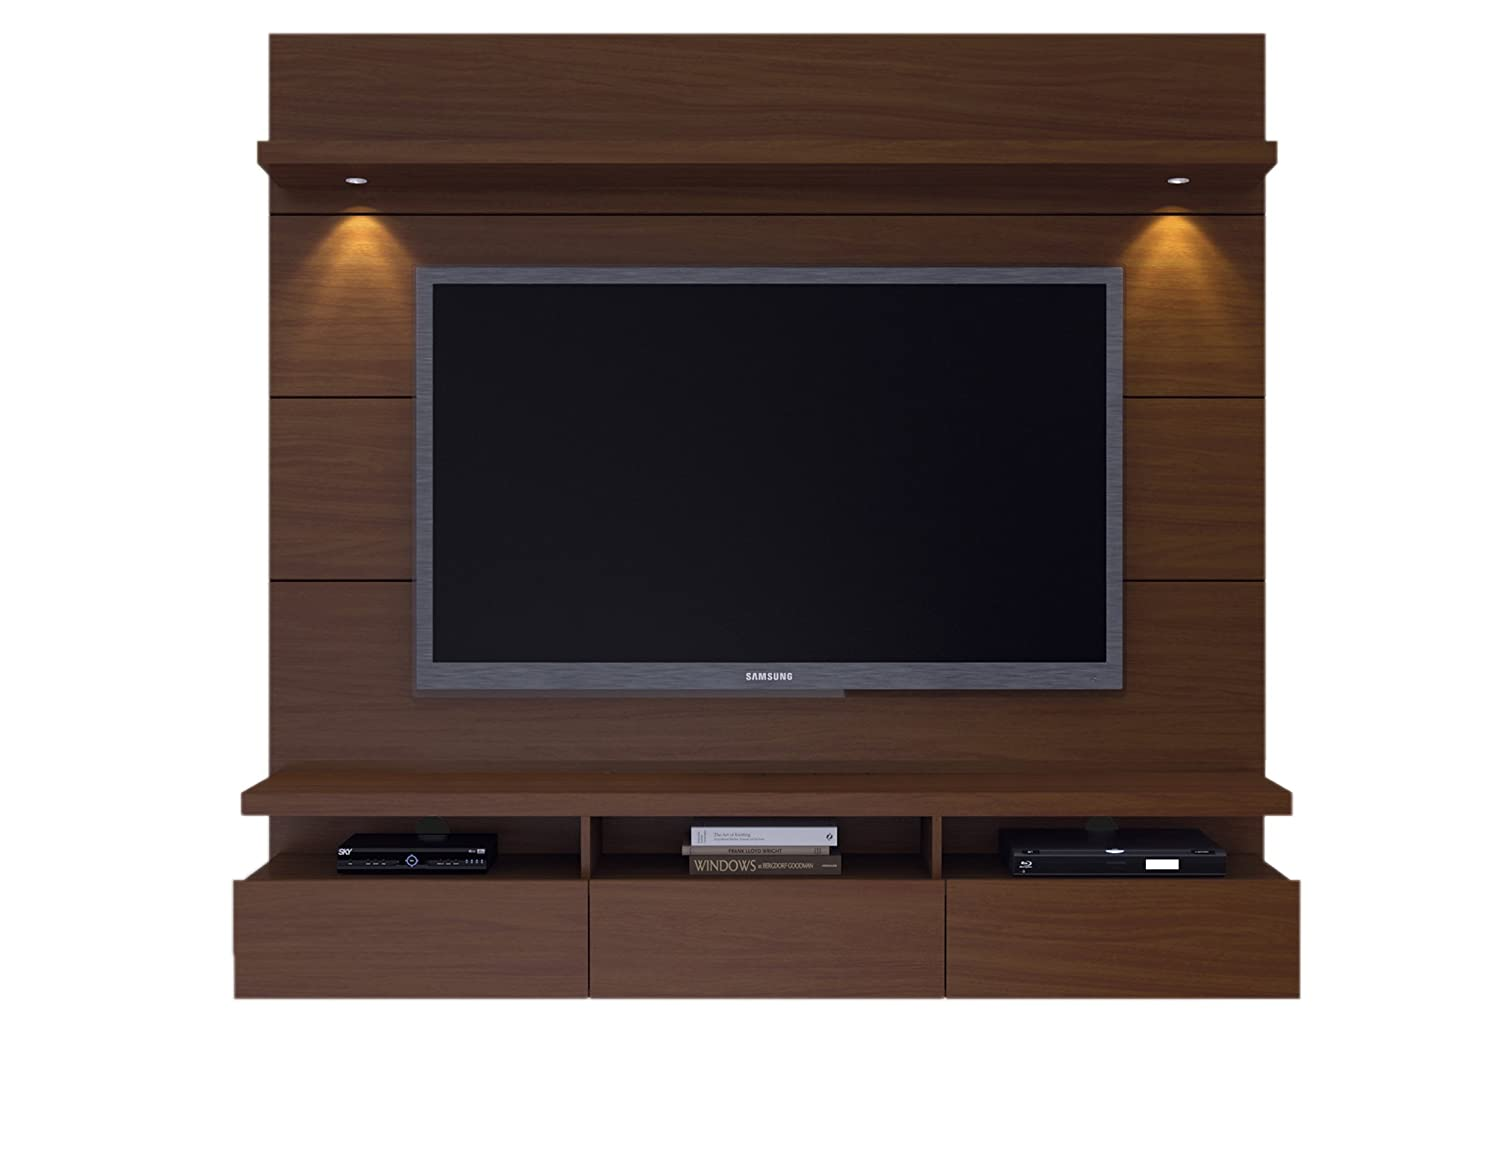 "Manhattan Comfort Cabrini Theater Panel 1.8 Collection TV Stand with Drawers Floating Wall Theater Entertainment Center, 71.25"" L x 16.73"" D x 67.24"" H, Nut Brown"